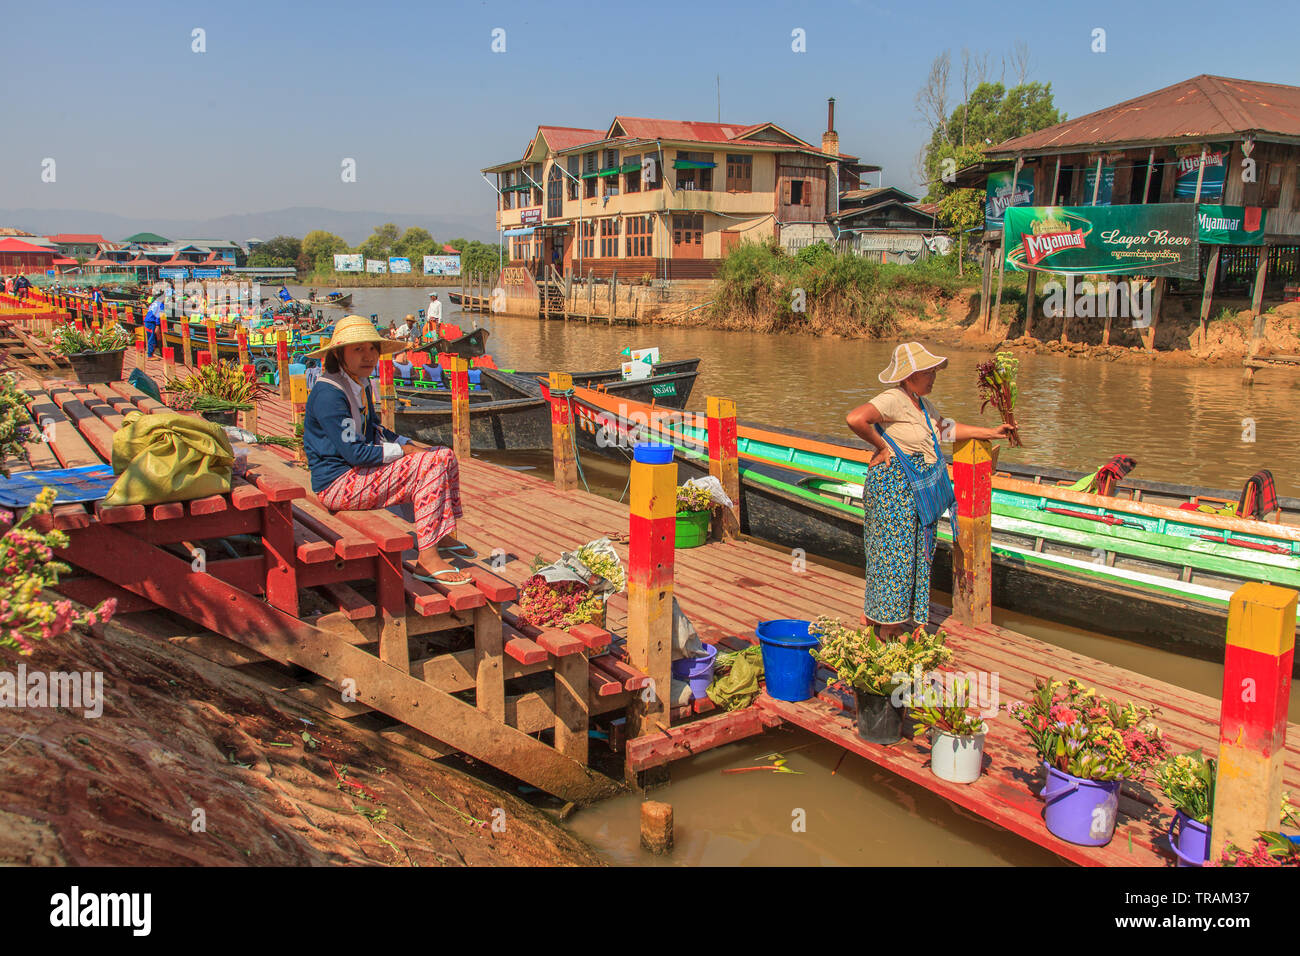 Flower sellers at the temple entrance, Inle Lake Myanmar - Stock Image